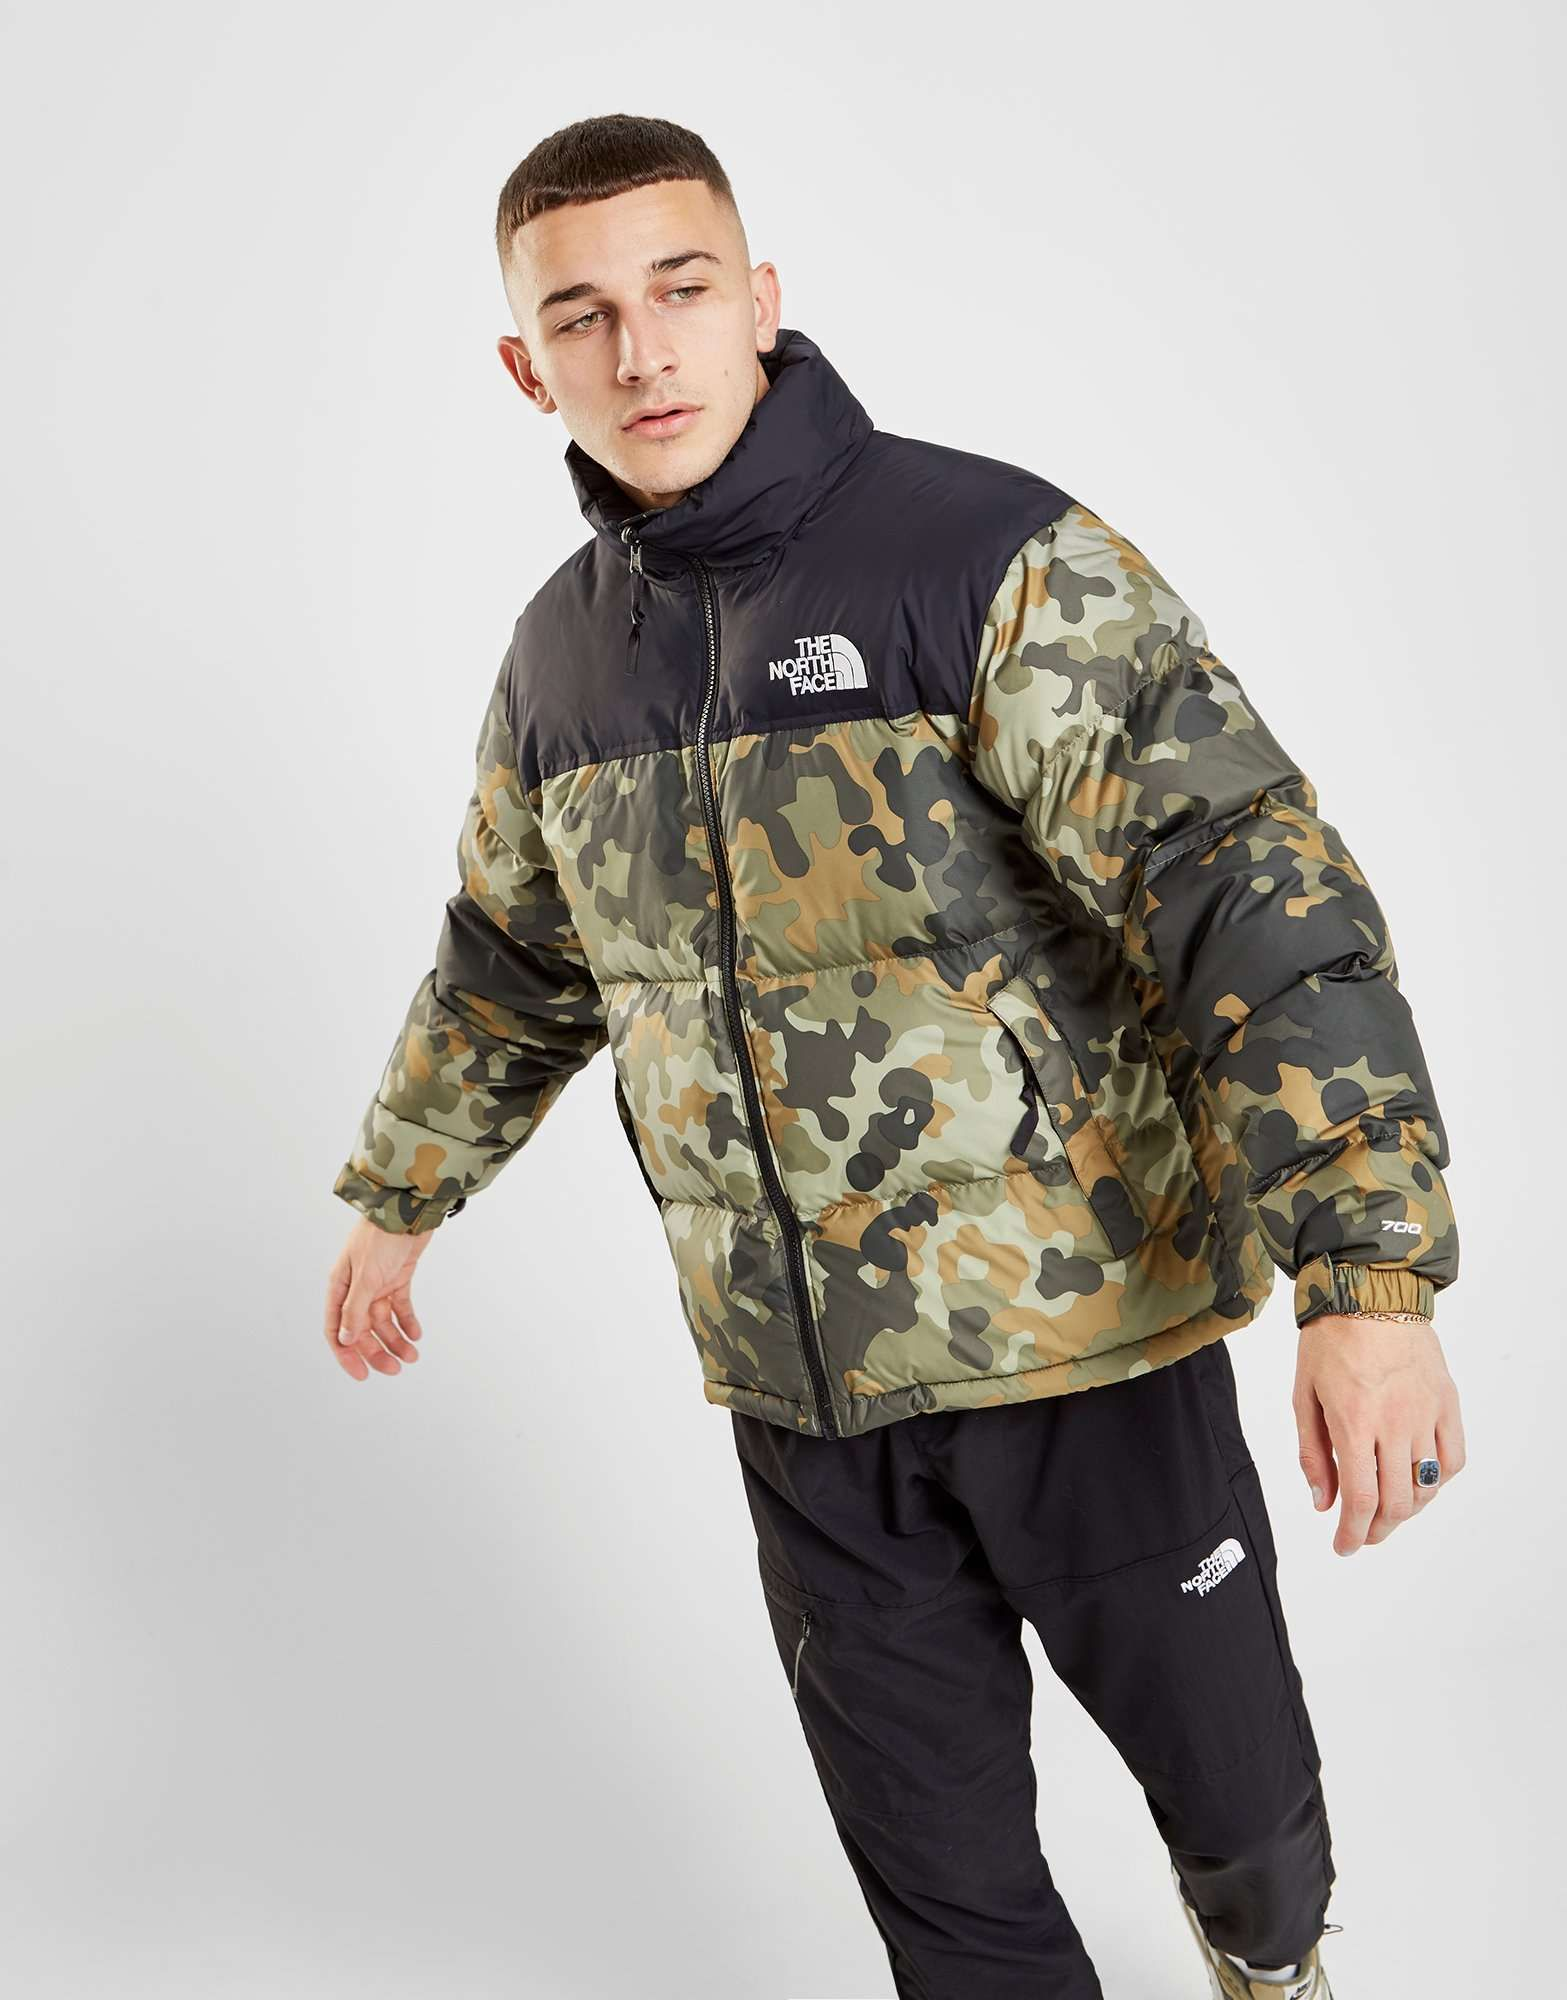 in The 2019North Face face Nuptse 1996 North Jacket vymNnw80O